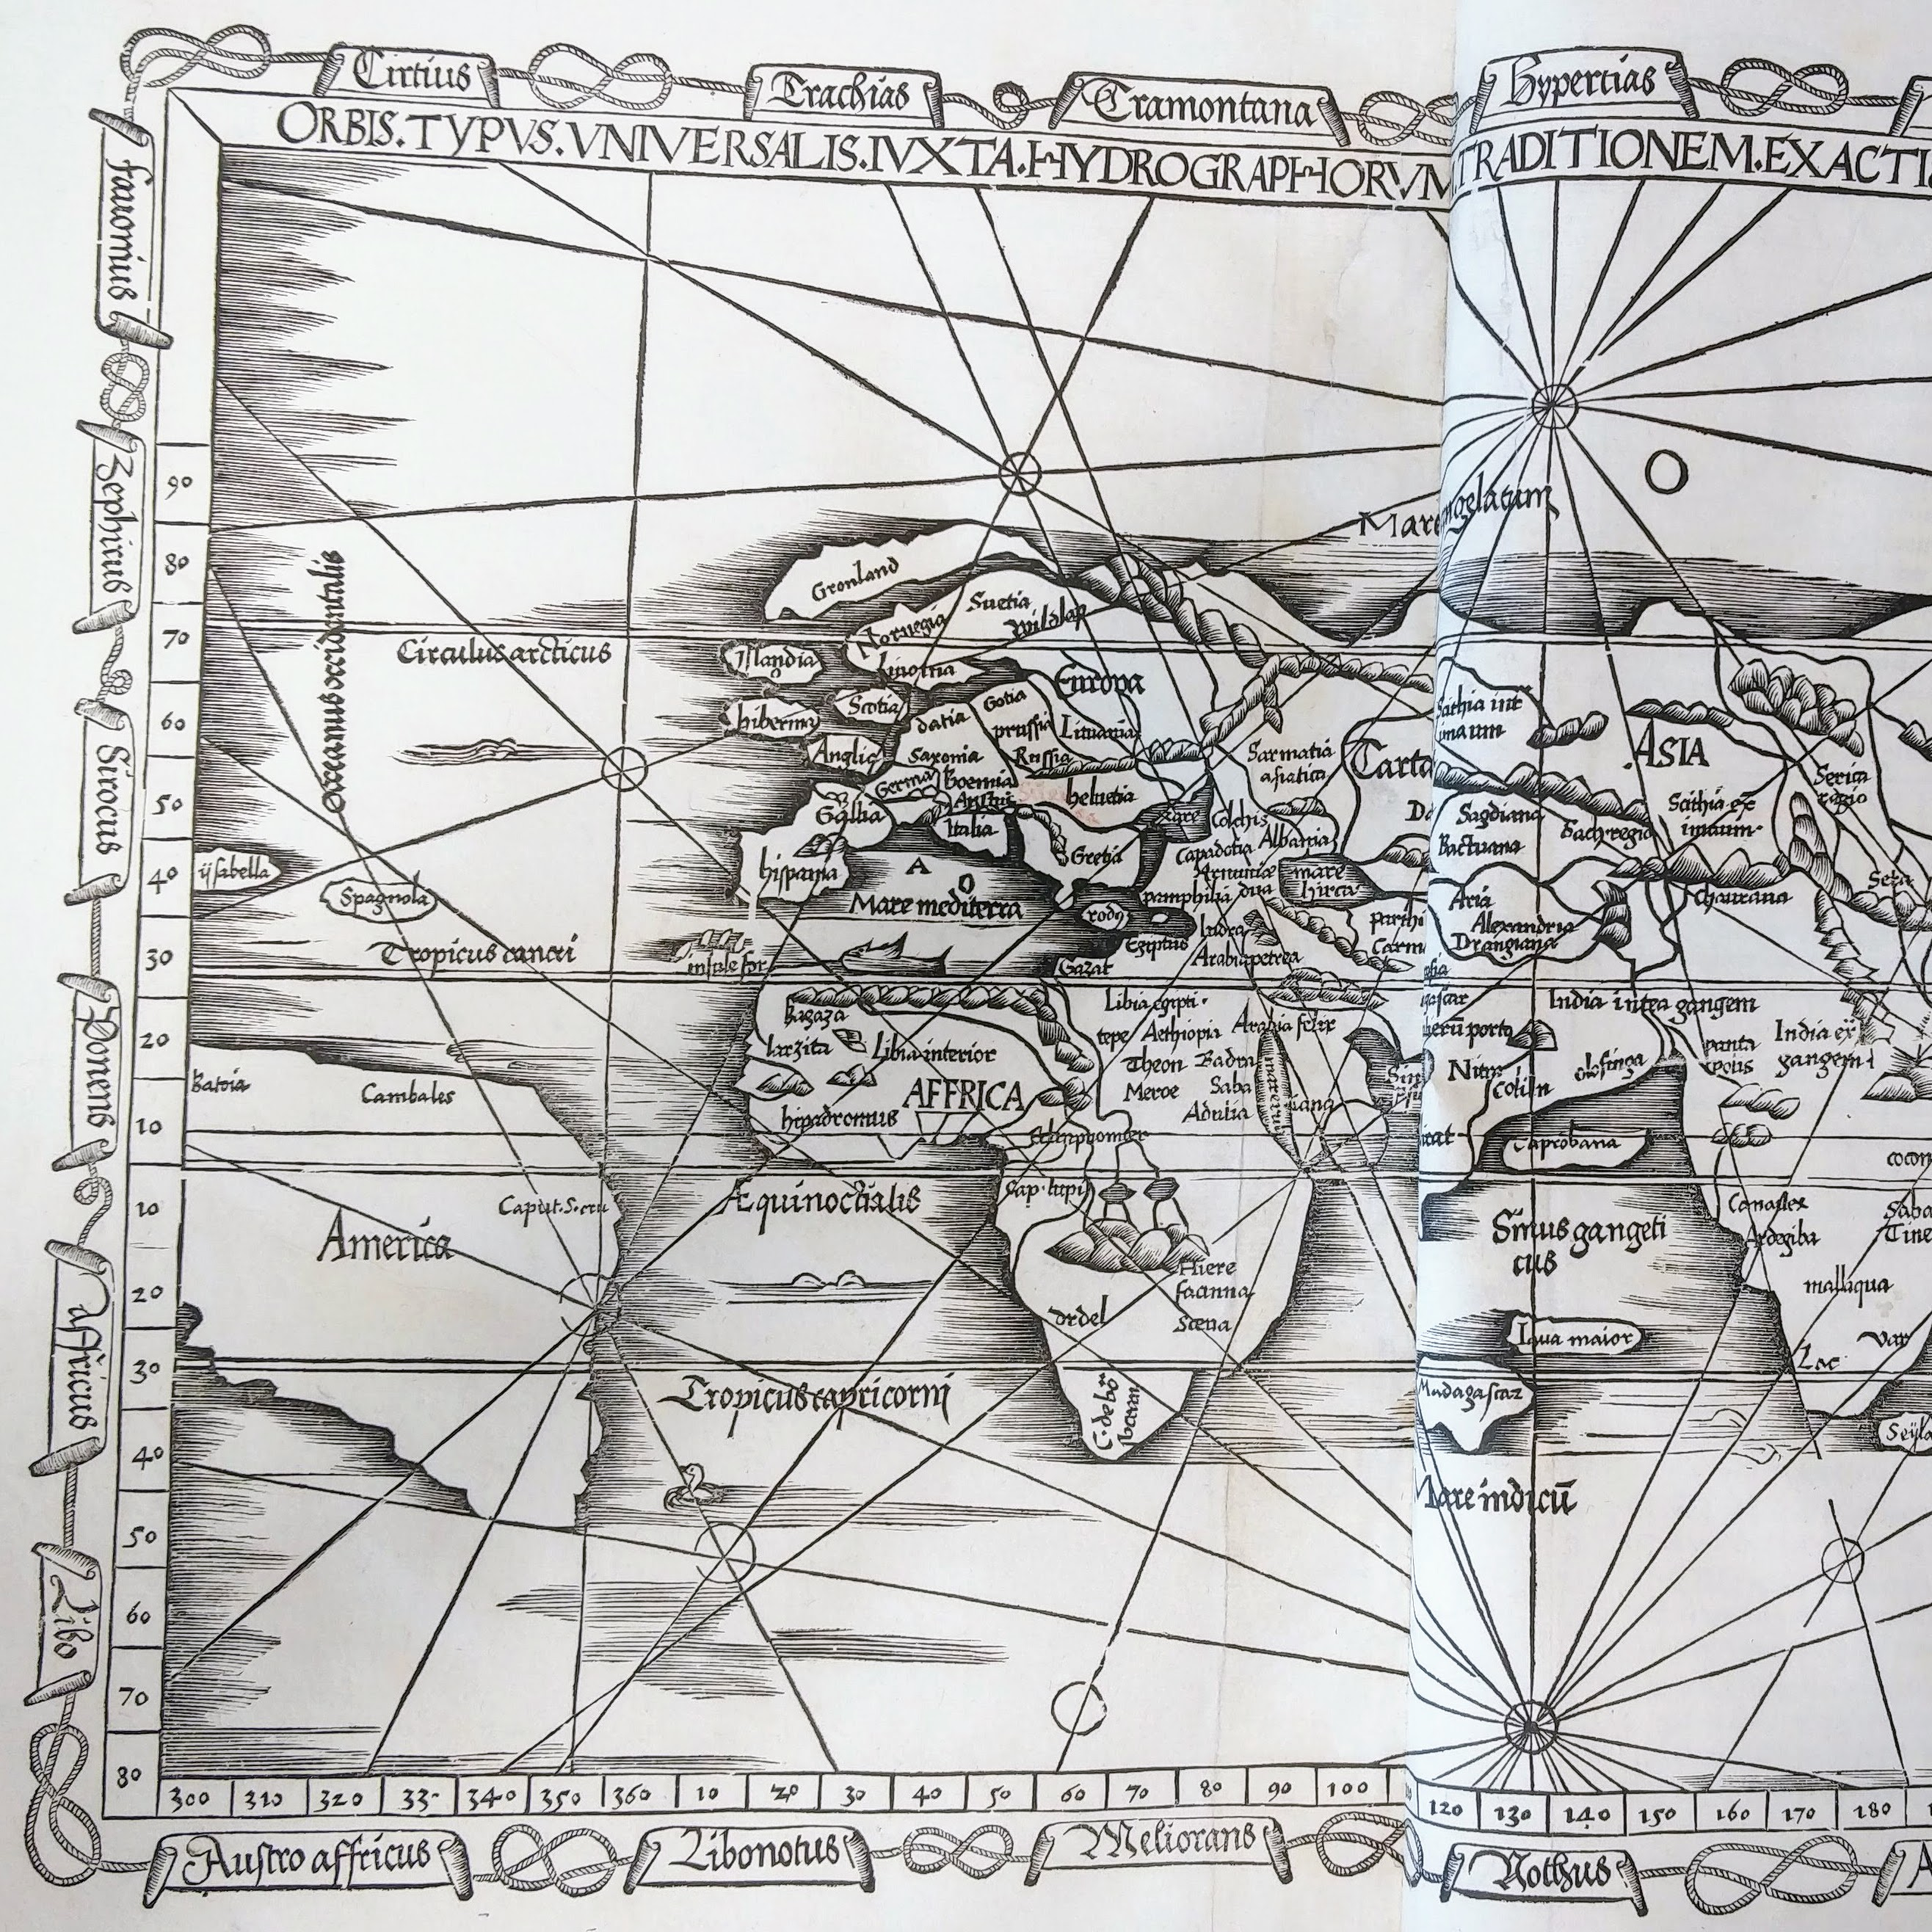 Atlas showing America